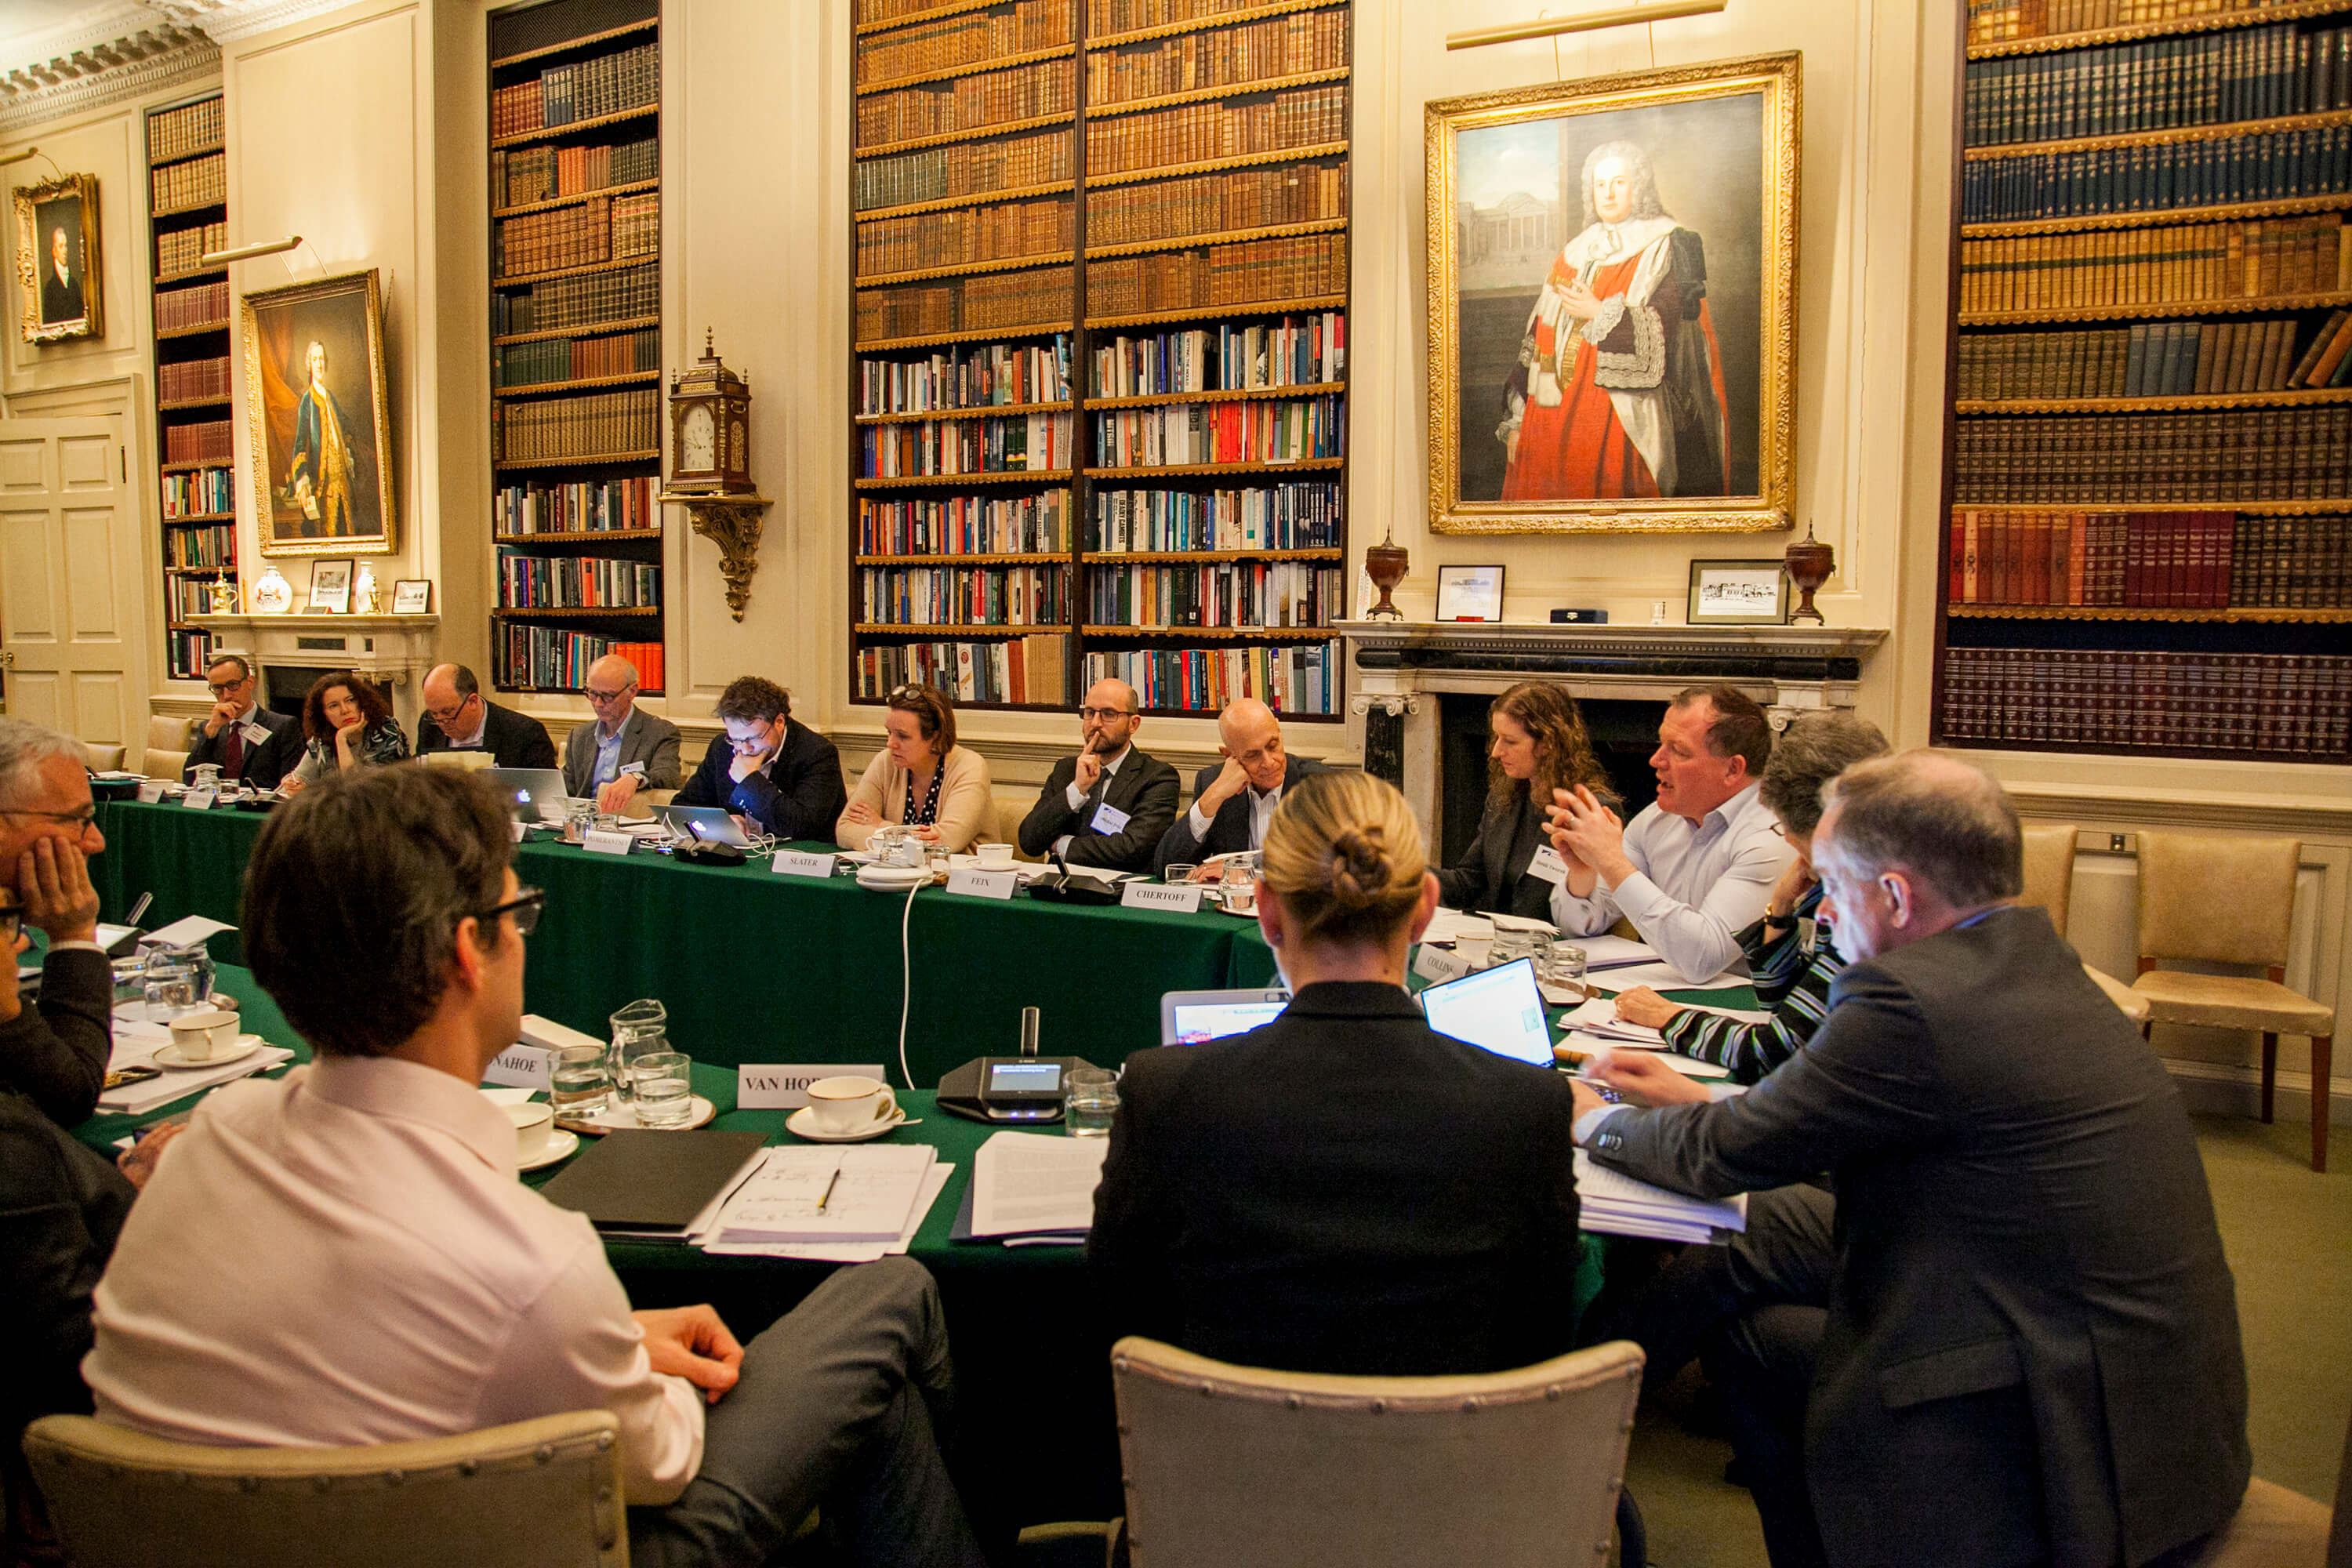 Damian Collins speaks in a group meeting in the library. Credit: Silver Apples Photography. Transatlantic Working Group.